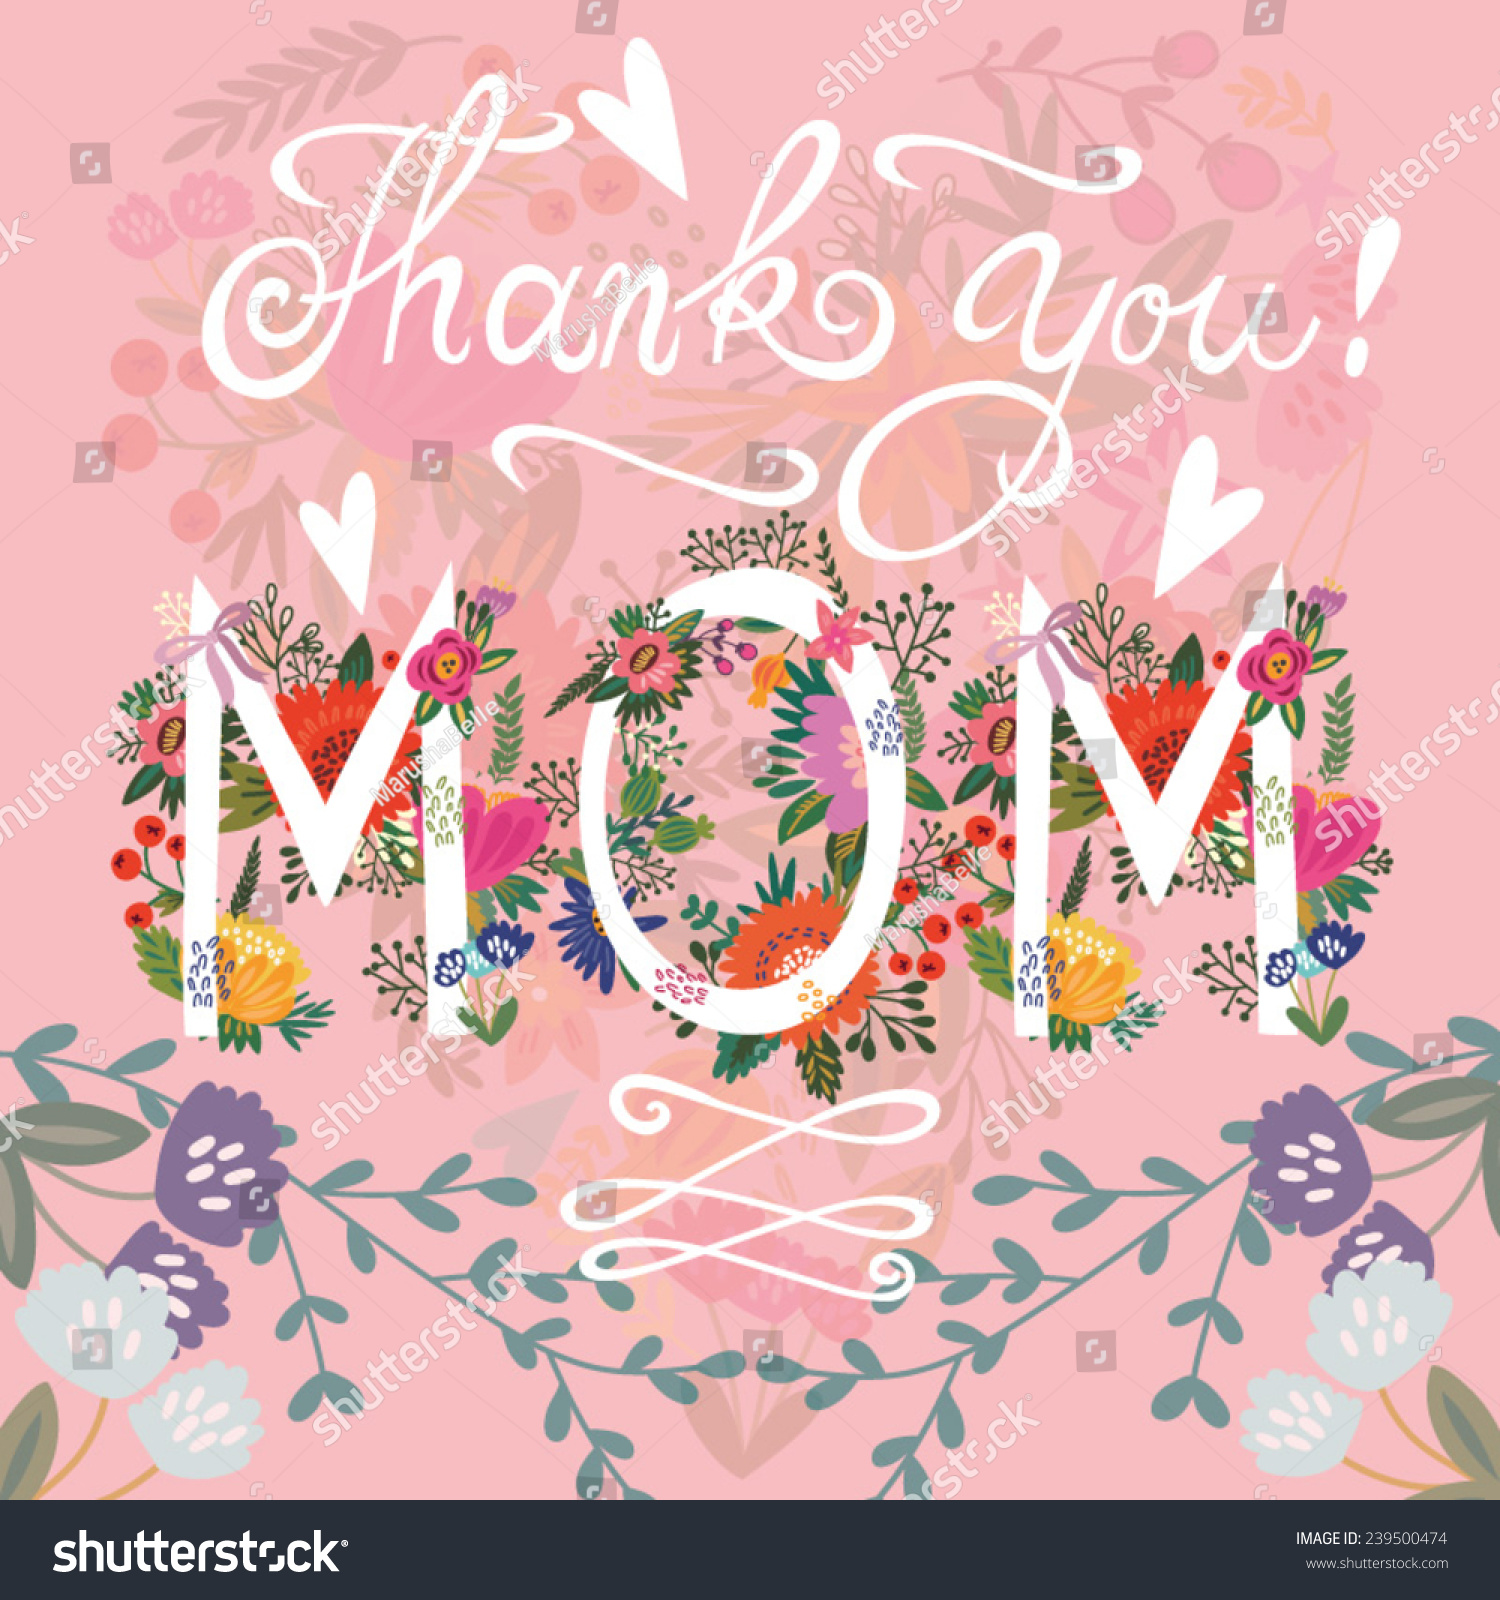 Beautiful Greeting Card Thank You Mom Bright Illustration Can Be Used